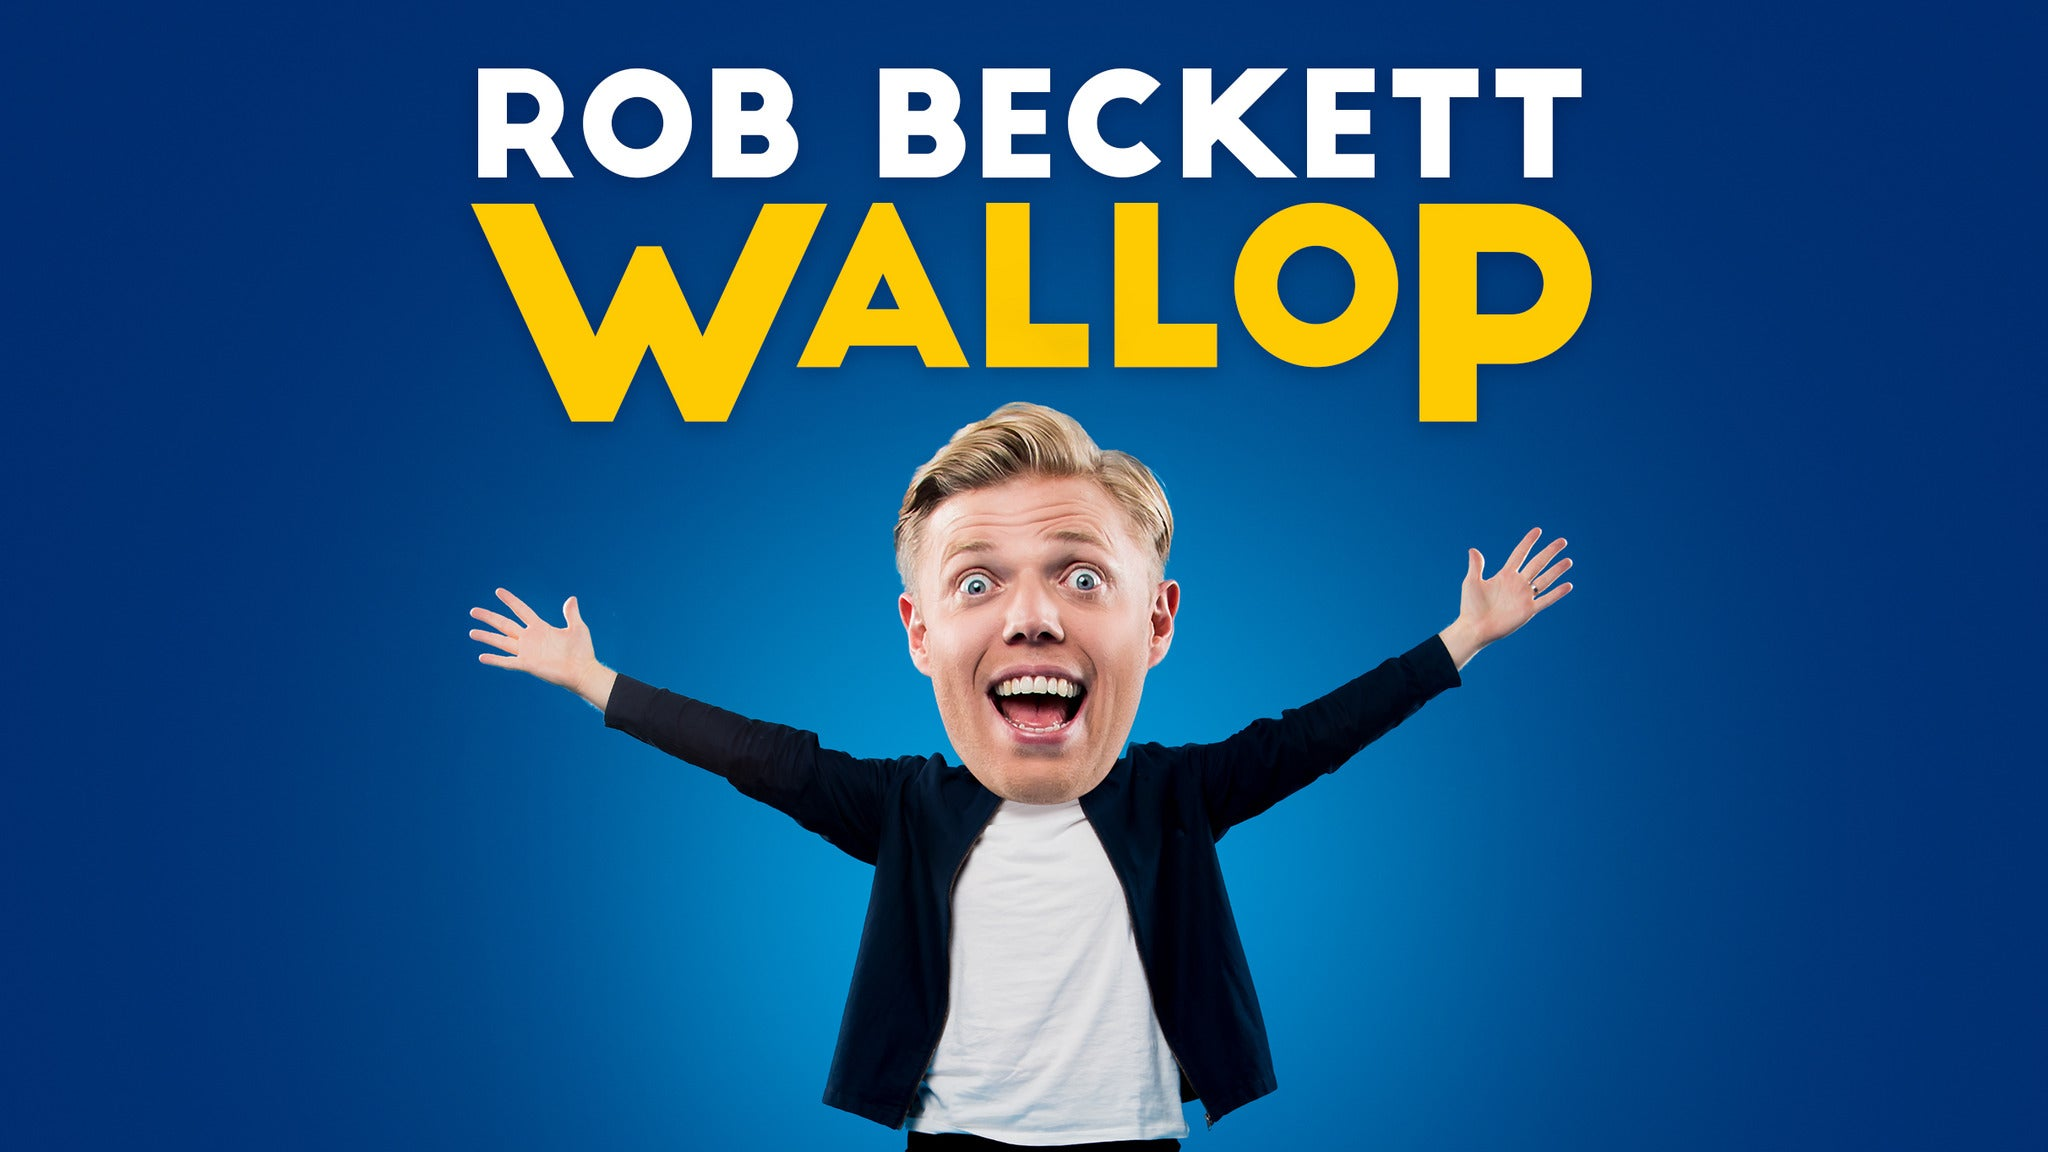 Rob Beckett - Wallop Event Title Pic